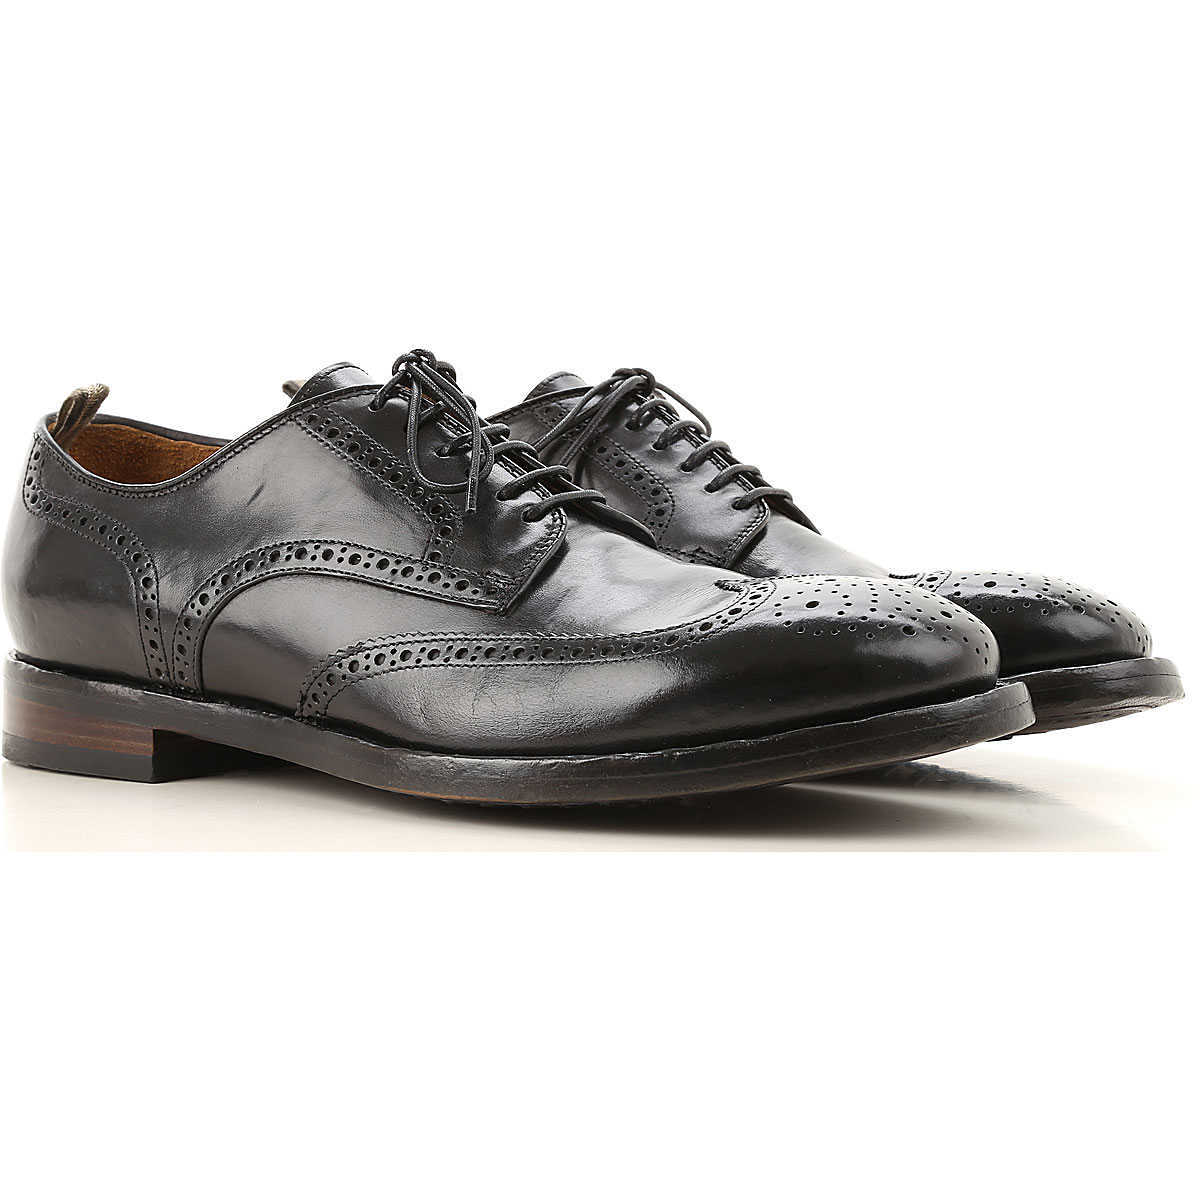 Officine Creative Lace Up Shoes for Men Oxfords Derbies and Brogues - GOOFASH